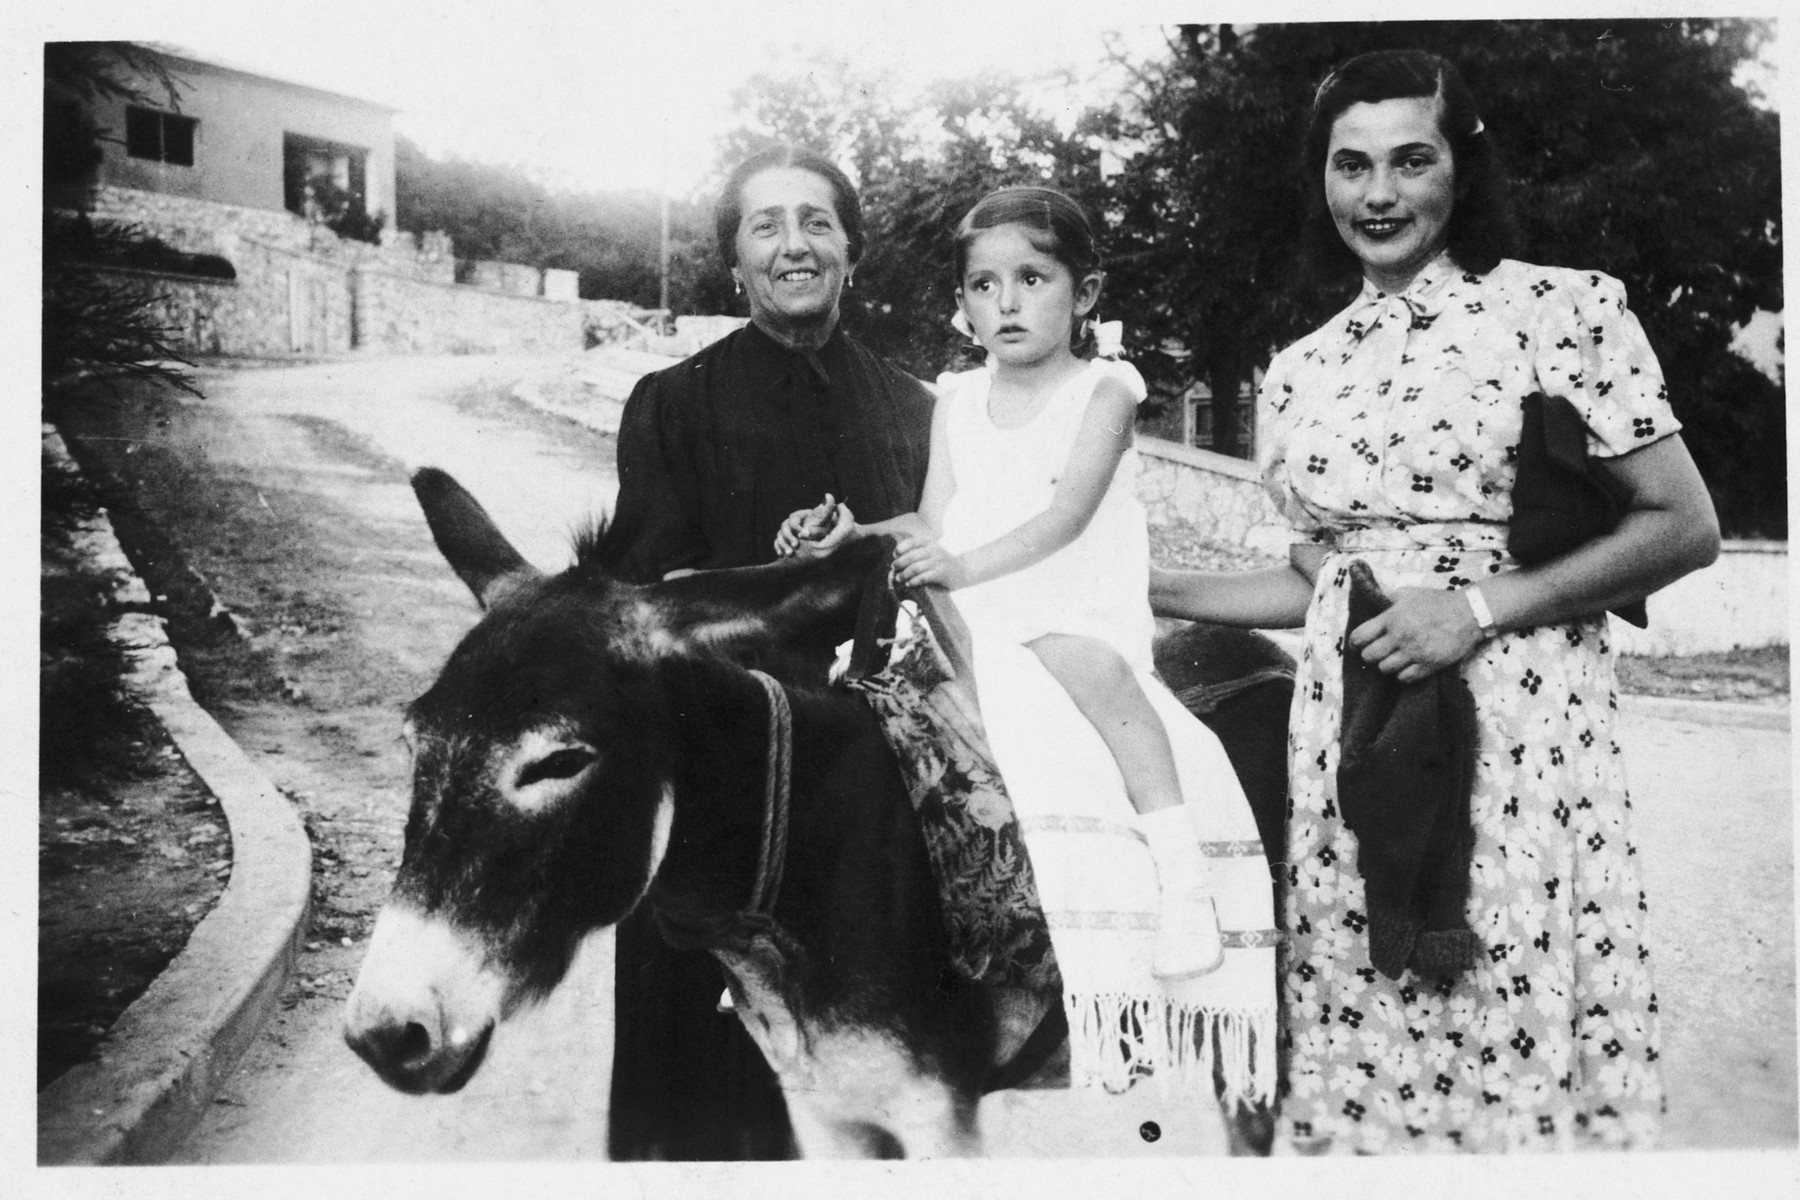 Branka Juhn rides a donkey while on vacation with her mother and grandmother on the Adriatic coast.  Pictured from left to right are: Flora, Branka and Henrietta Juhn.